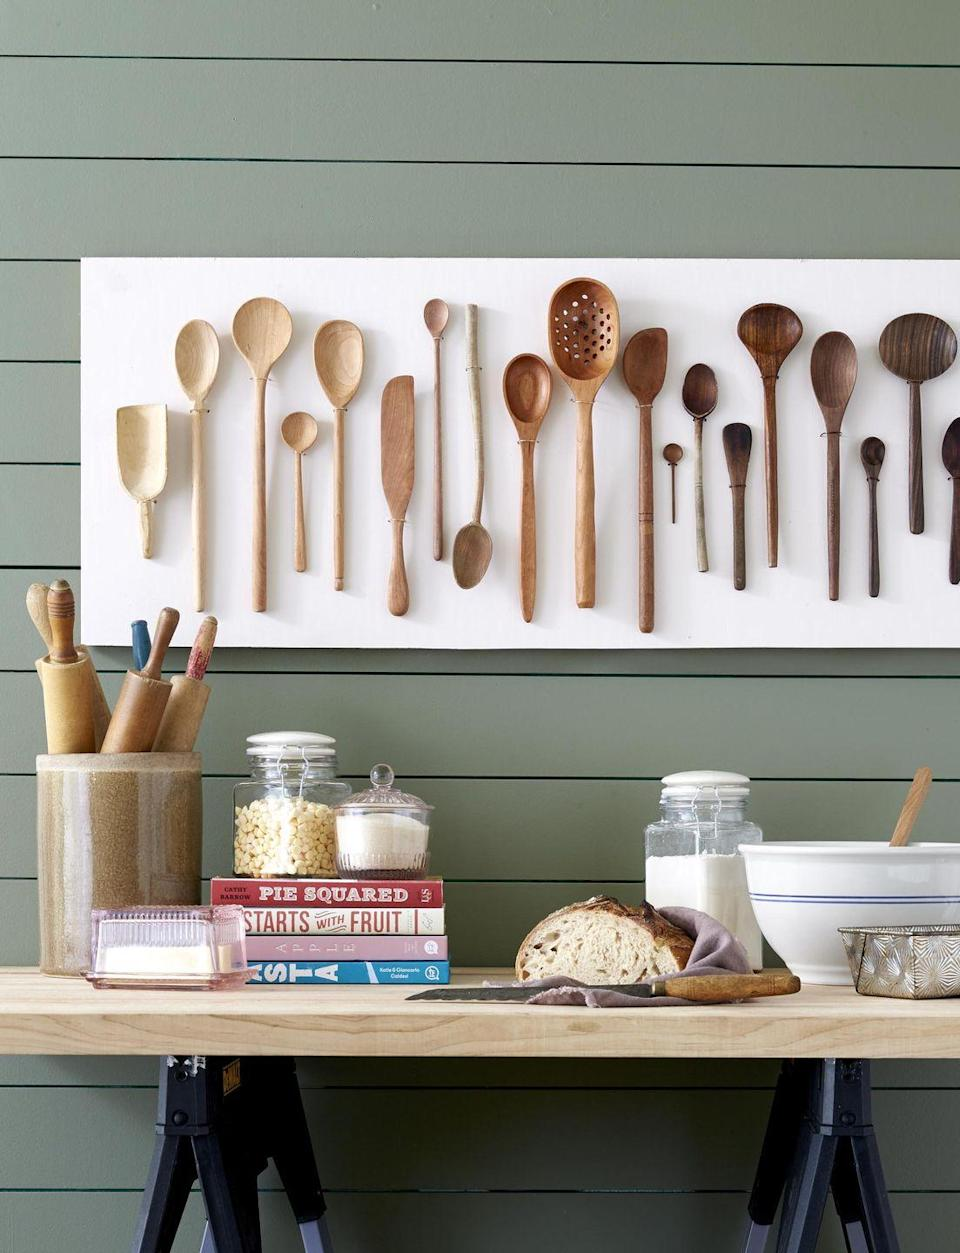 <p>A collection of spoons takes pride of place in the kitchen when mounted on a painted board. For an extra special look, mount them in an ombre pattern.<br><br><strong>To make: </strong>To assemble, cut a piece of plywood to the desired size and paint. Lay spoons in a light-to-dark pattern on the wood, and use a pencil to mark a spot on both sides of each spoon, typically<br>just below the bowl. Remove spoons, and drill holes at markings. Working with one spoon at a time, loop fine-gauge wire over the handle and through the holes; twist together wire ends behind the wood to secure. Repeat until complete, then hang.</p>